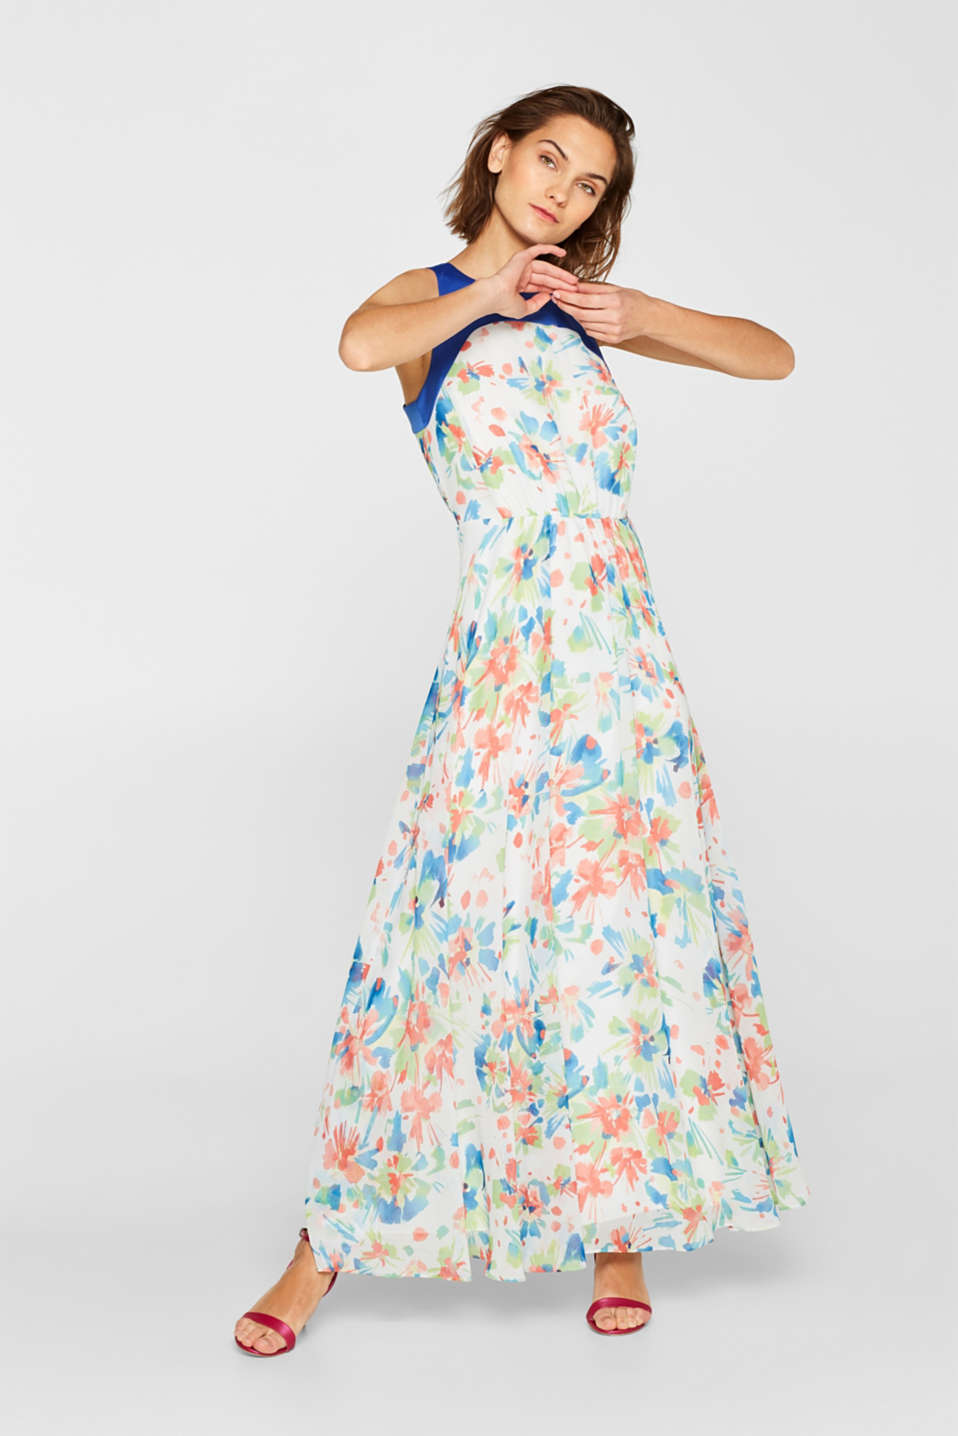 Esprit - Printed chiffon dress with satin trims